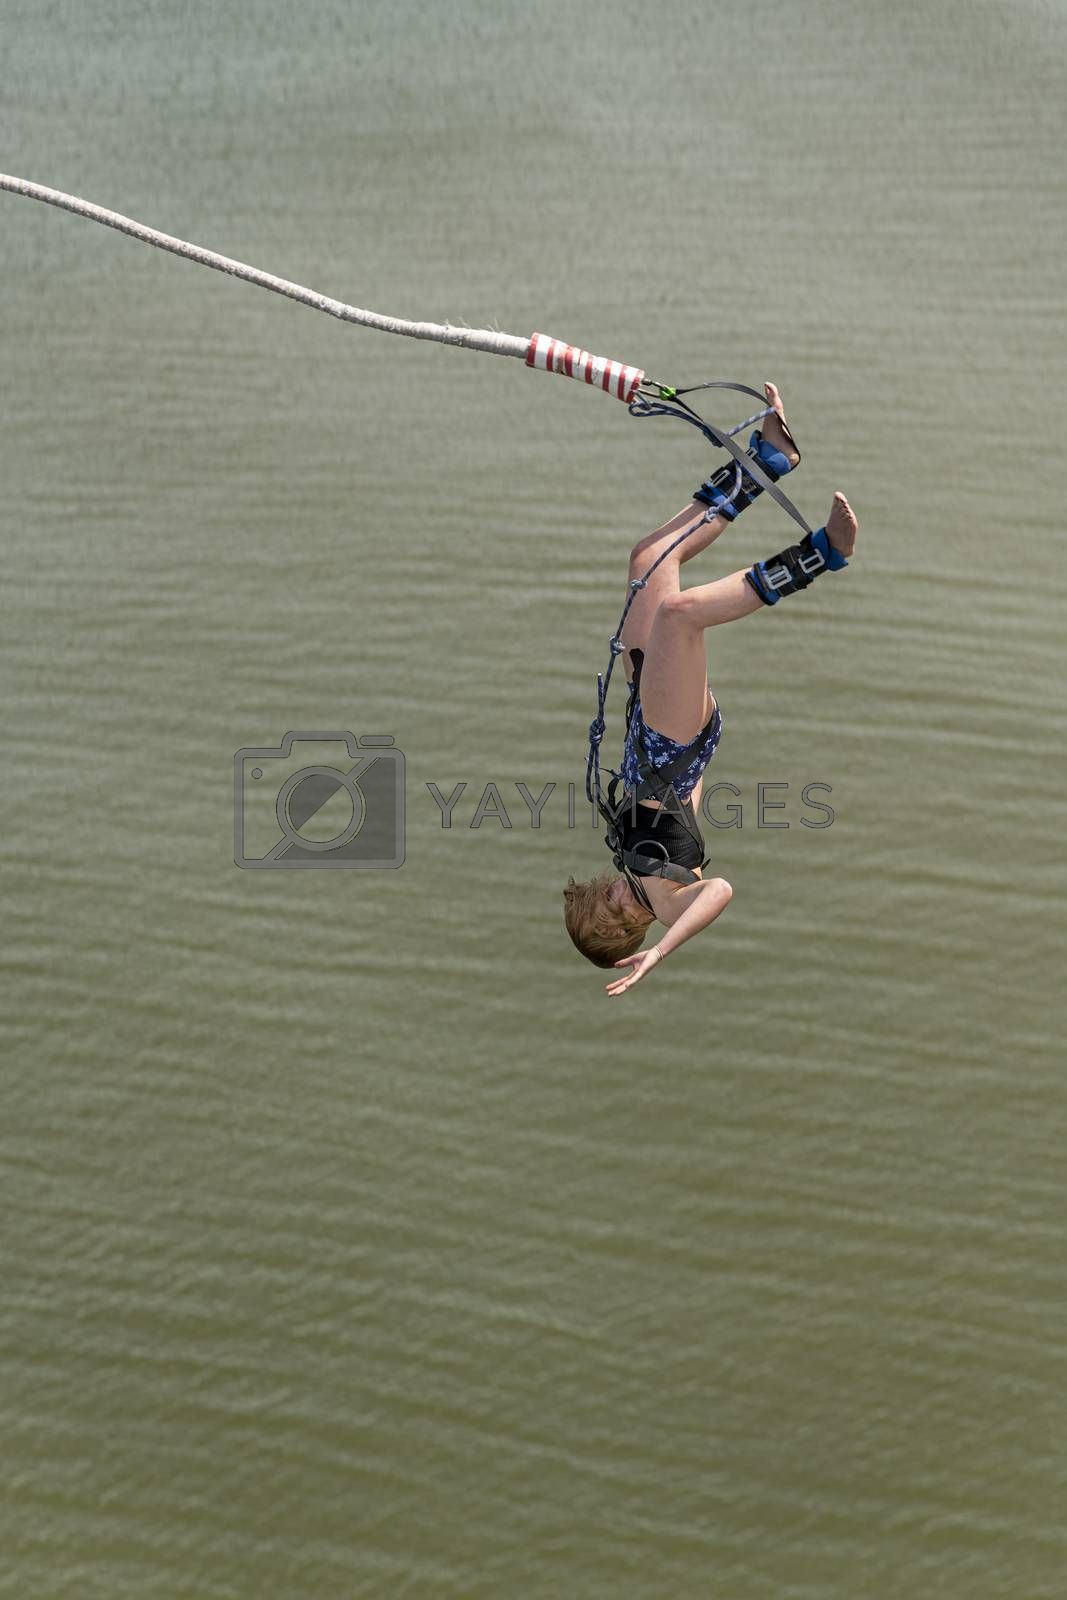 Bungee jumper jump from a platform hanging on the crane into the water against a pur blue spring sky of The Hague, Netherlands